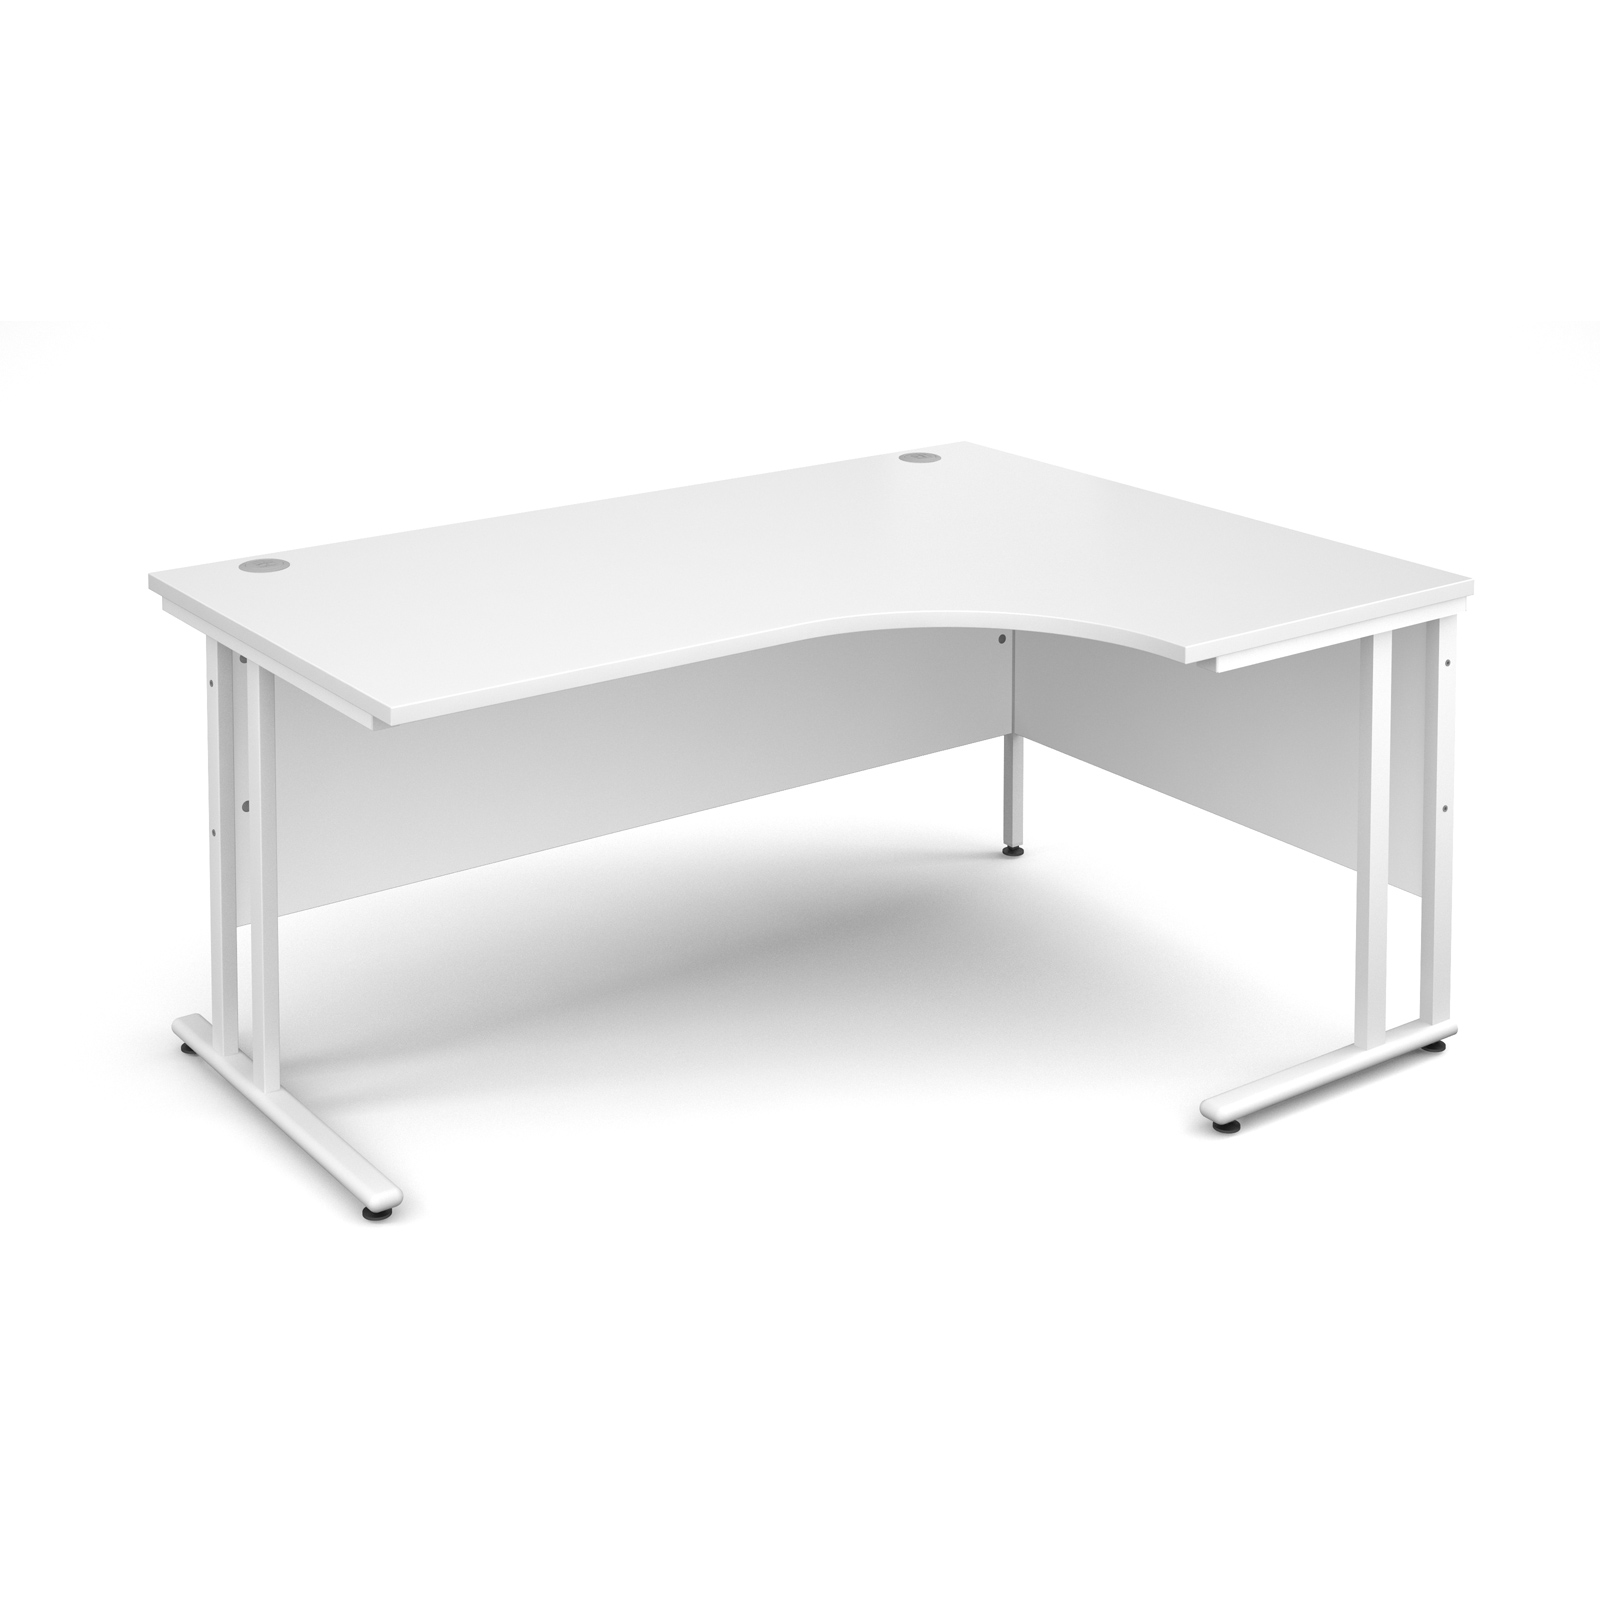 Maestro 25 WL right hand ergonomic desk 1600mm - white cantilever frame, white top